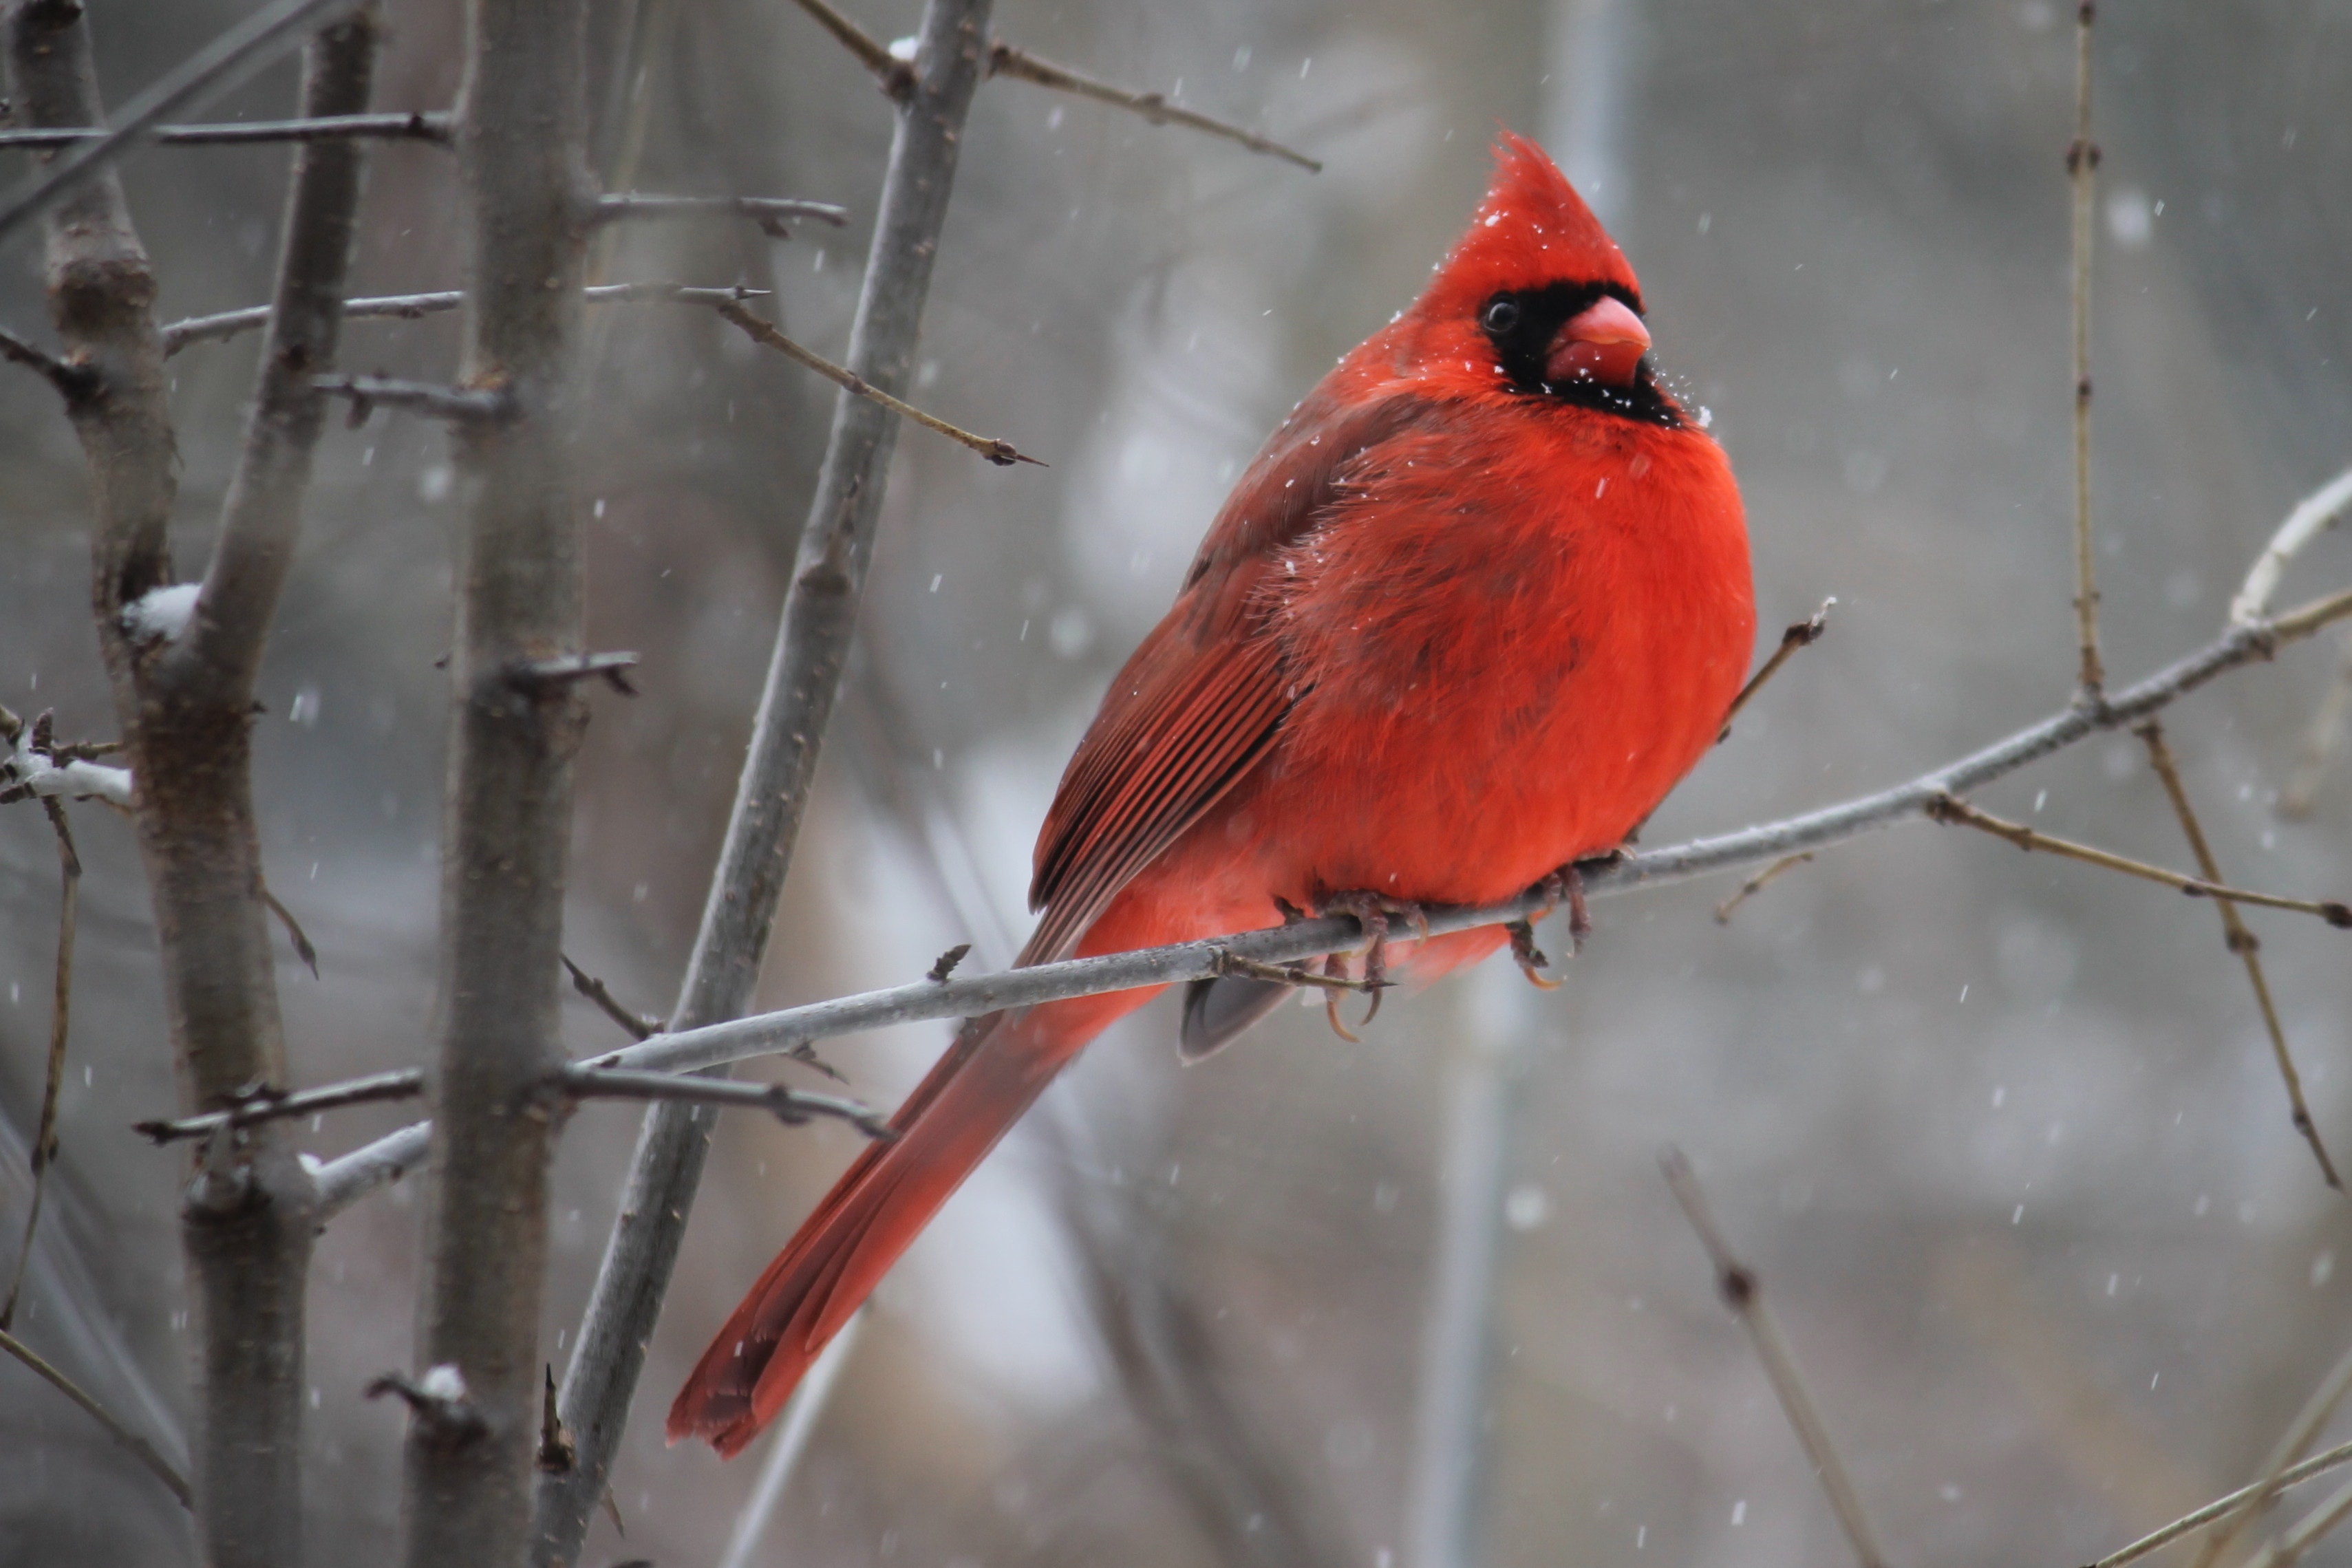 Red cardinal bird on tree branch photo